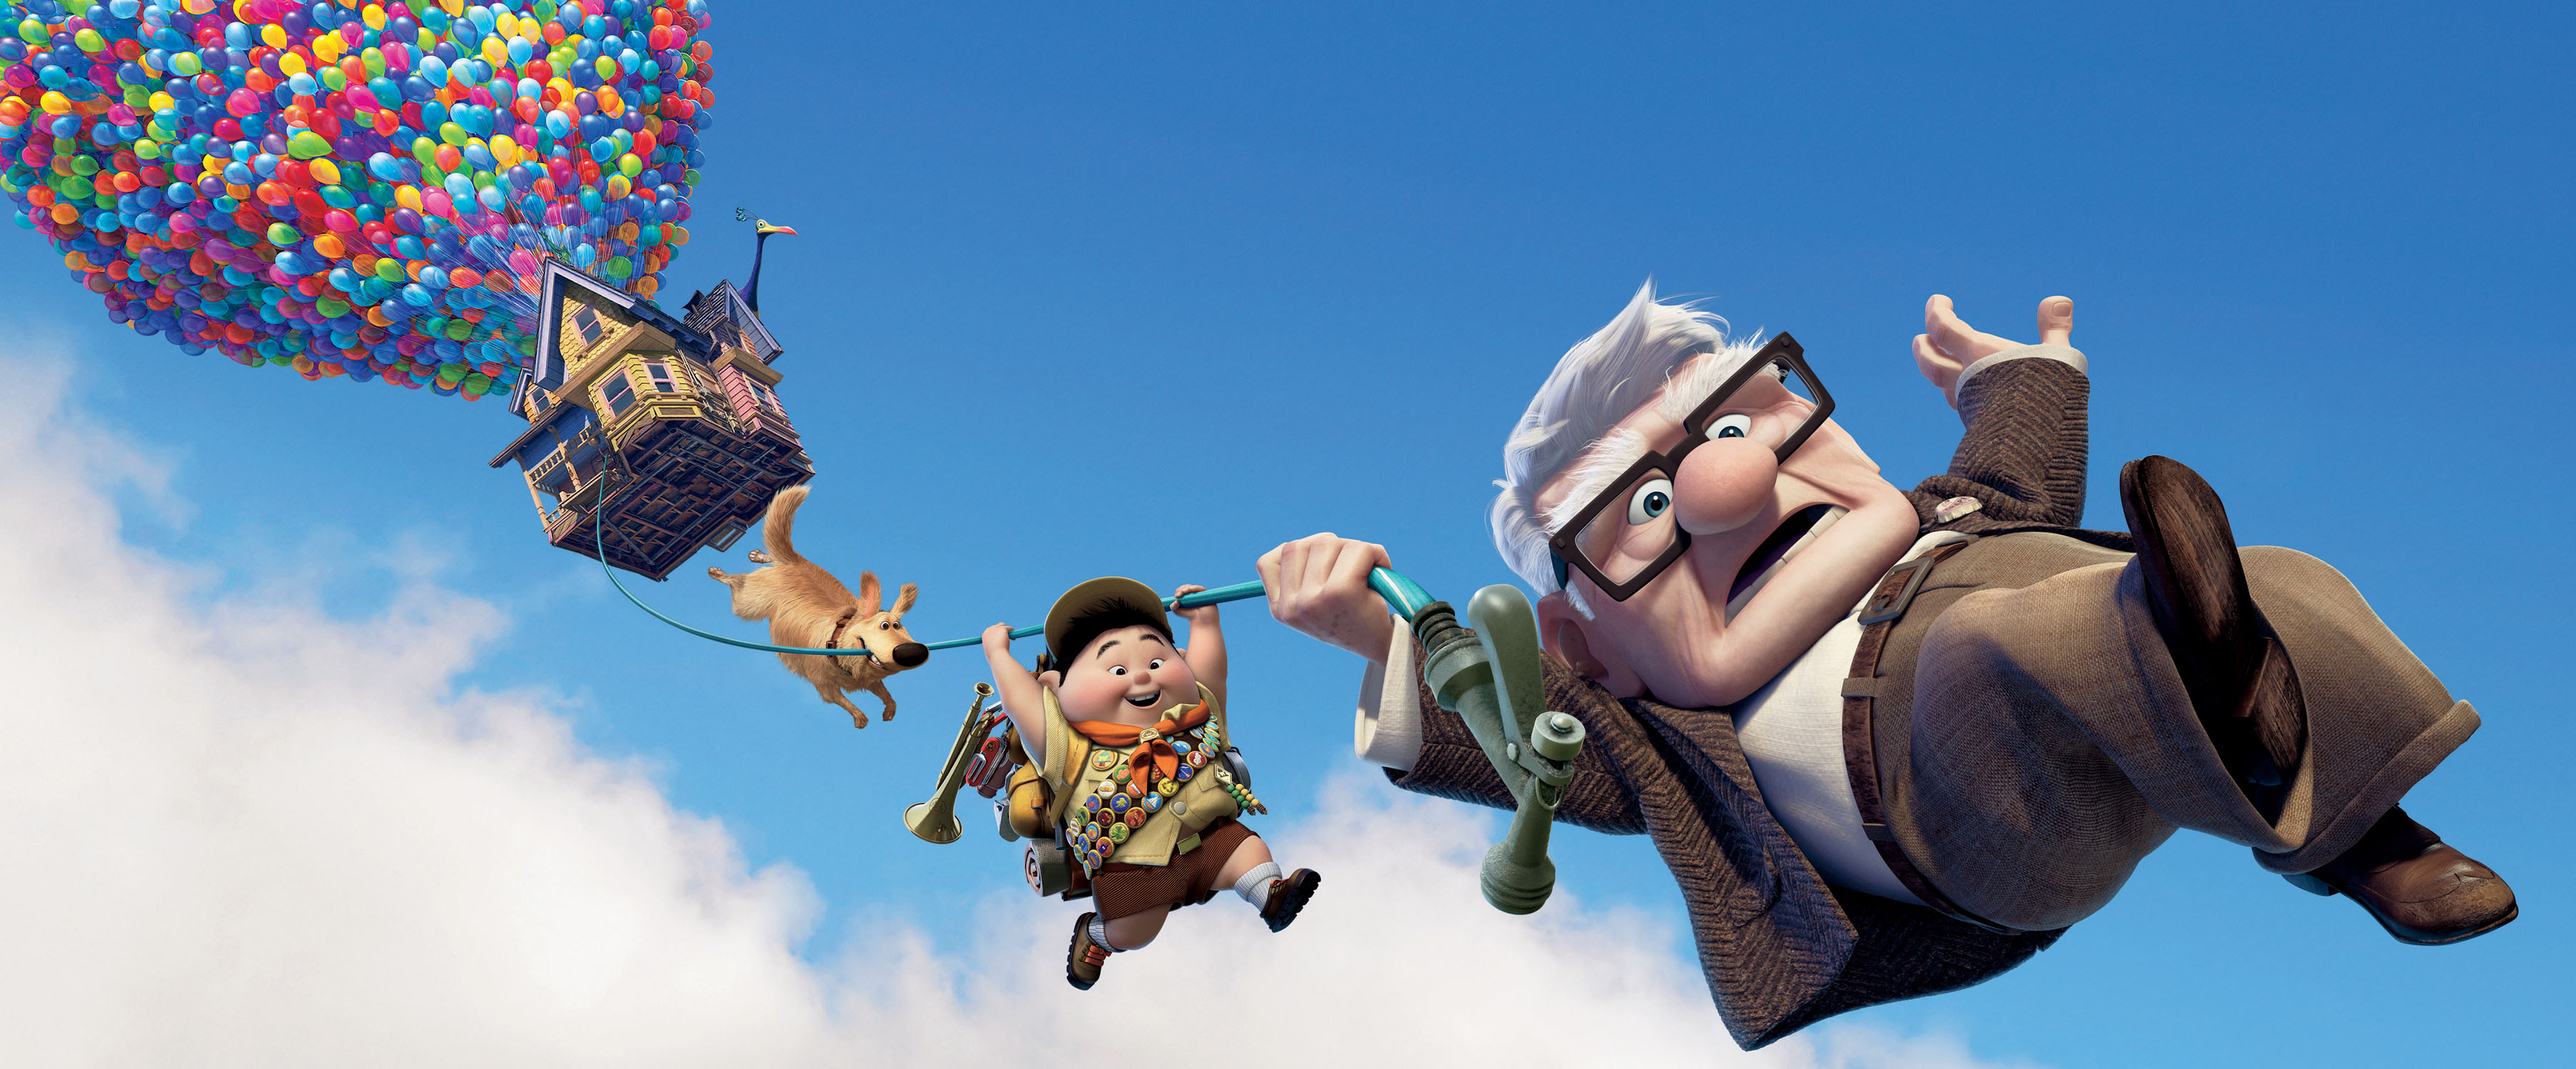 "Dug, from left, Russell, and Carl Fredricksen in Disney/Pixar's animation, ""Up."" (Disney/Pixar/MCT)"